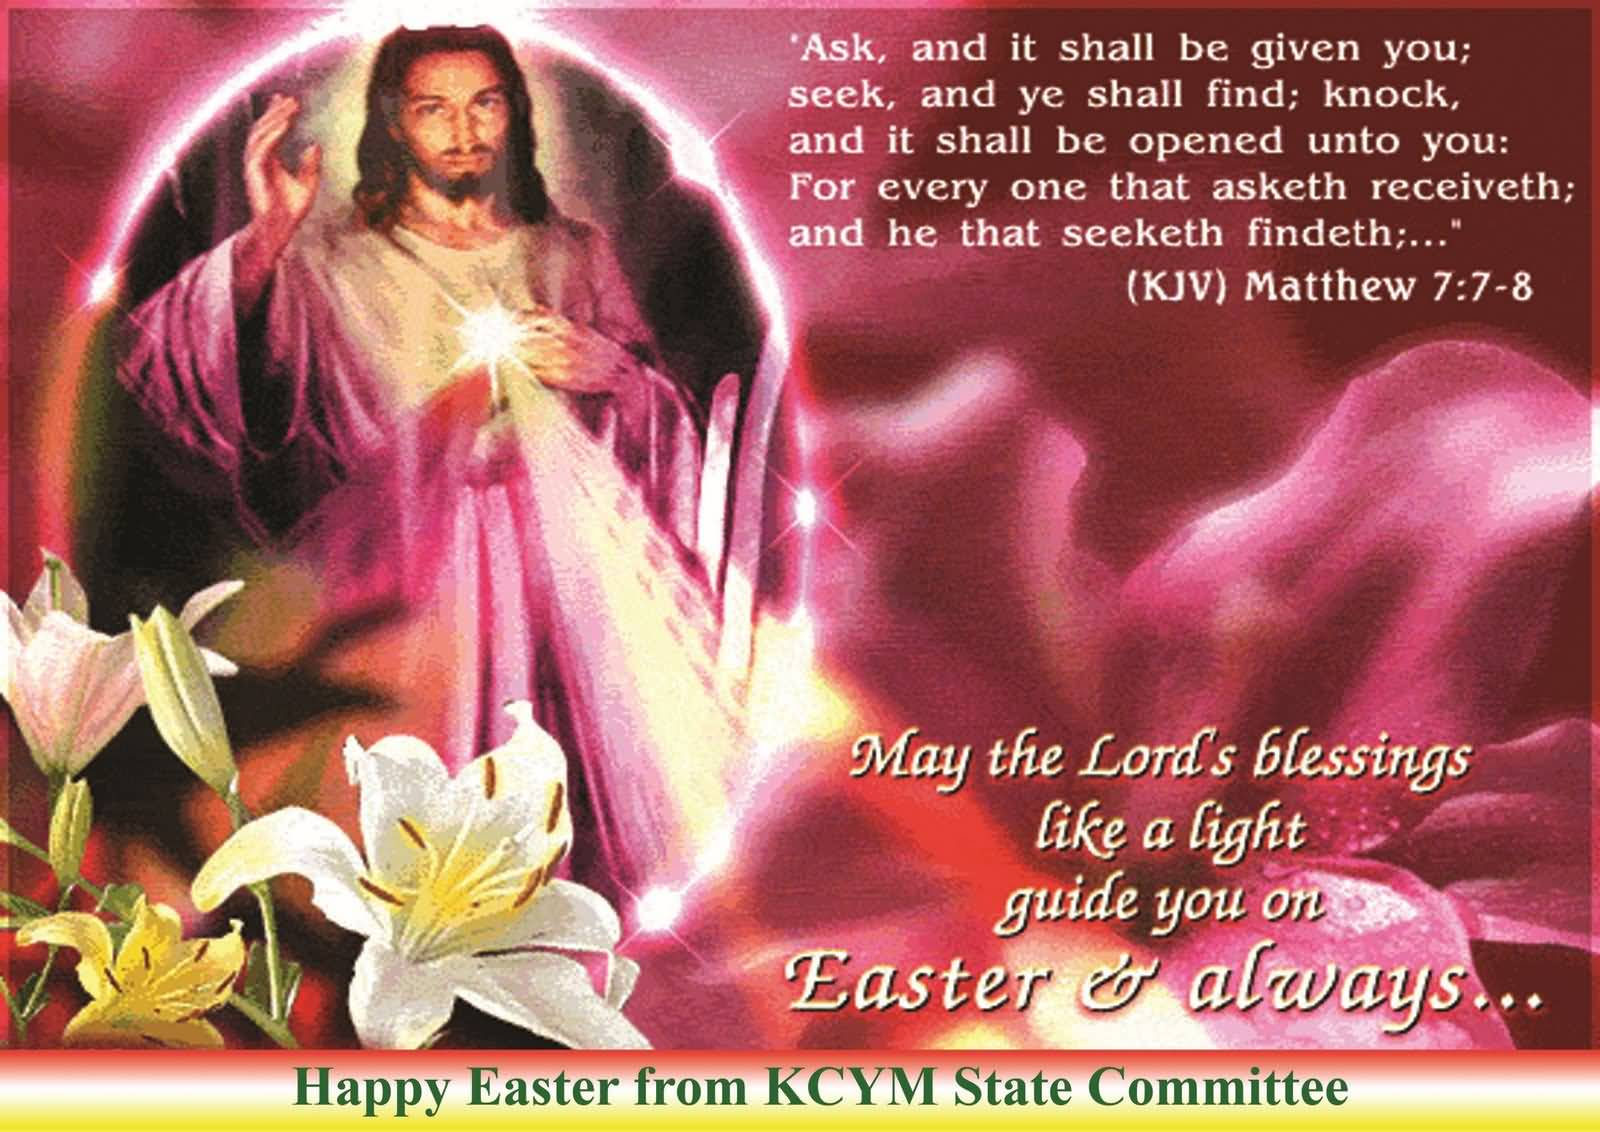 May The Lord's Blessings Like A Light Guide You On Easter & Always